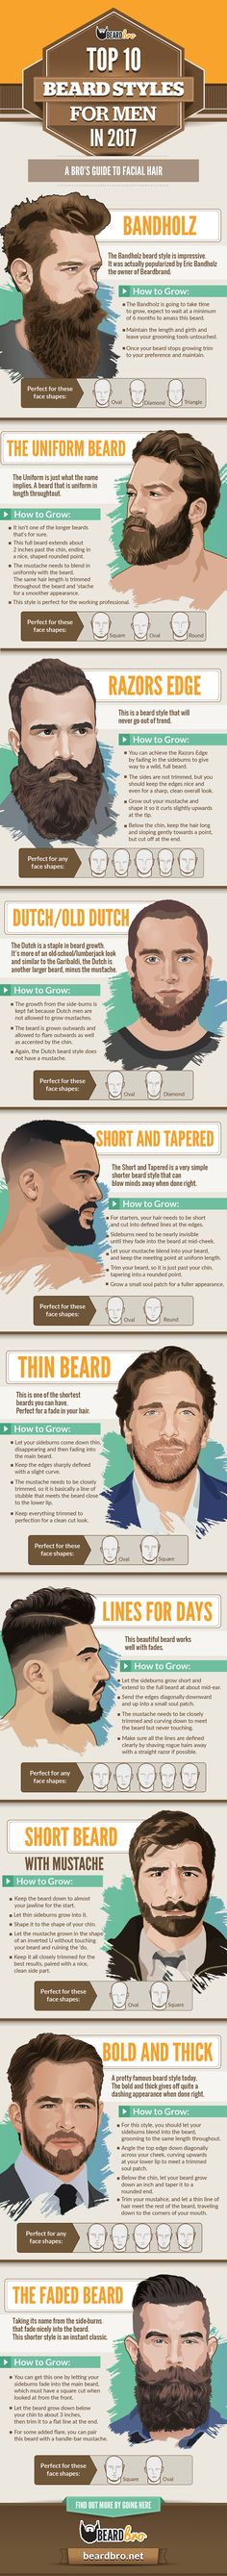 Growing a beard properly can take time and effort. If you are doing it, you may as well check out the top styles to see which one suits you. This infographic from Beard Bro might help you decide which facial hair style to go with: Different Beard Styles, Beard Styles For Men, Hair And Beard Styles, Beards And Mustaches, Bart Styles, Beard Tips, Beard Ideas, Beard Game, Beard Rules